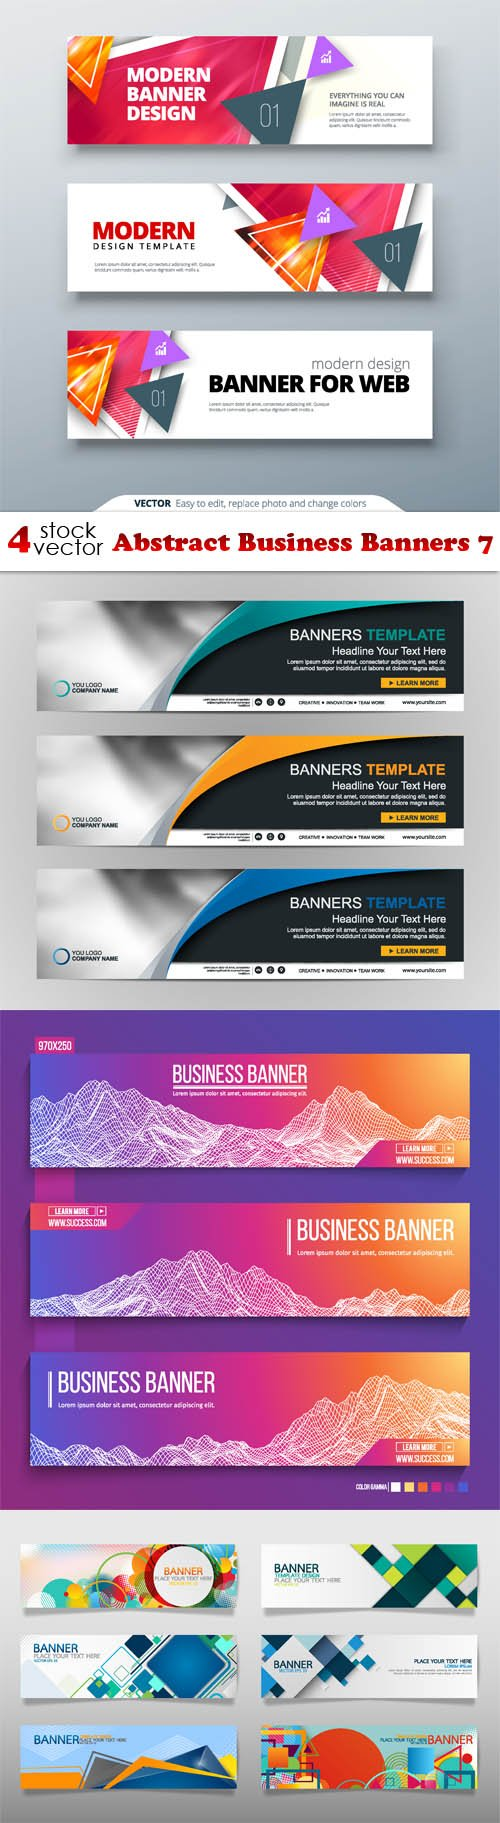 Vectors - Abstract Business Banners 7